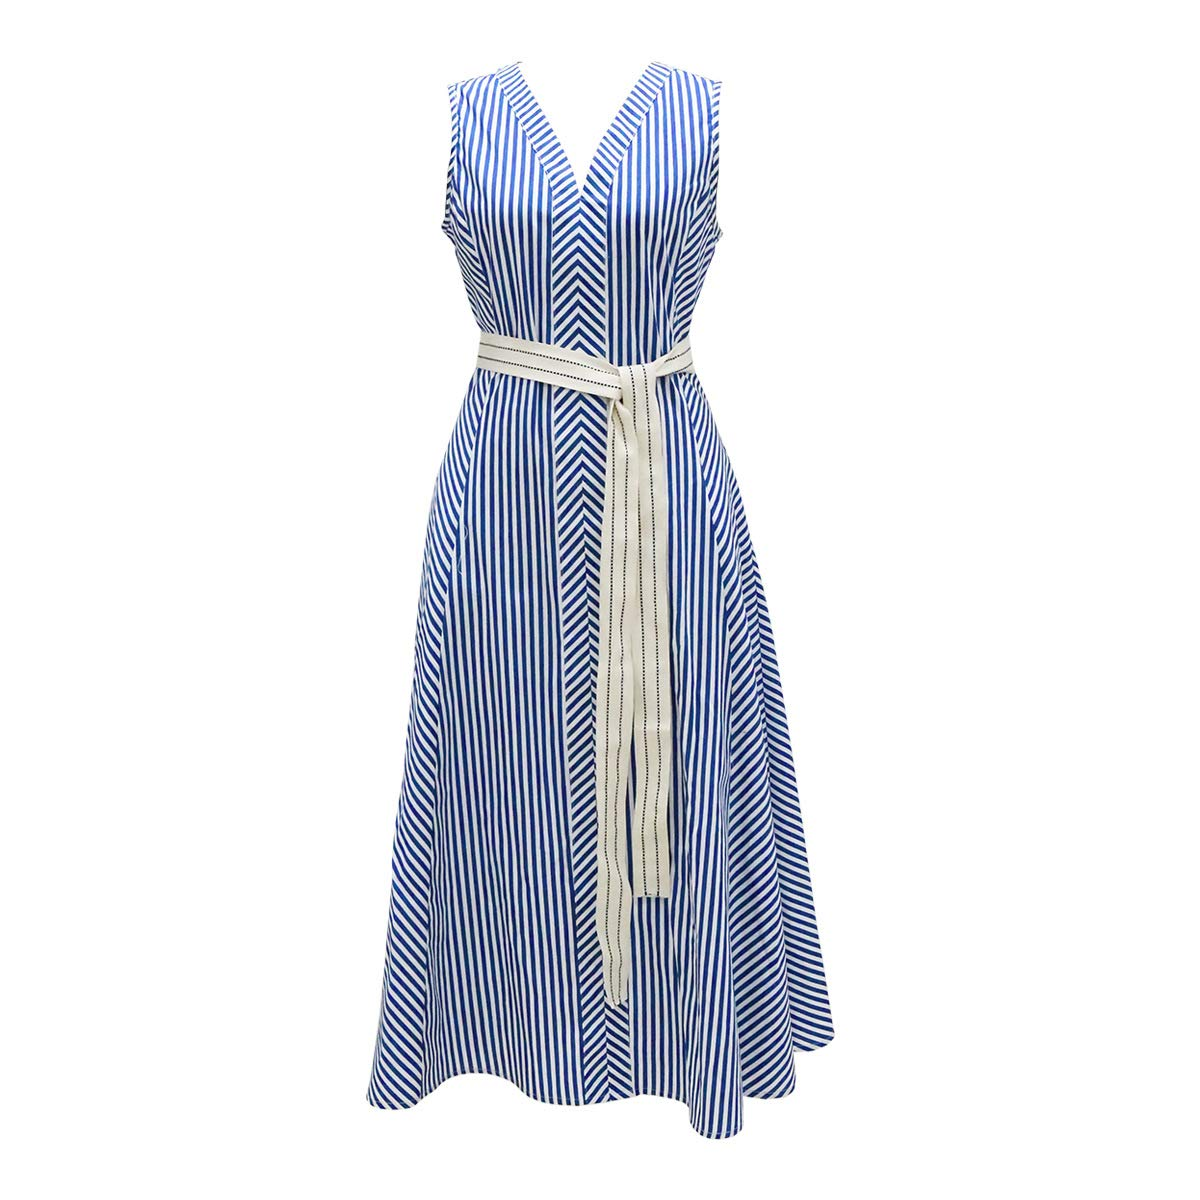 Women's Dress Sleeveless VNeck Striped Cotton Dress Stylish Slim Waist Dress bluee S,M,L,XL(Party,Travel,Wedding,Evening)